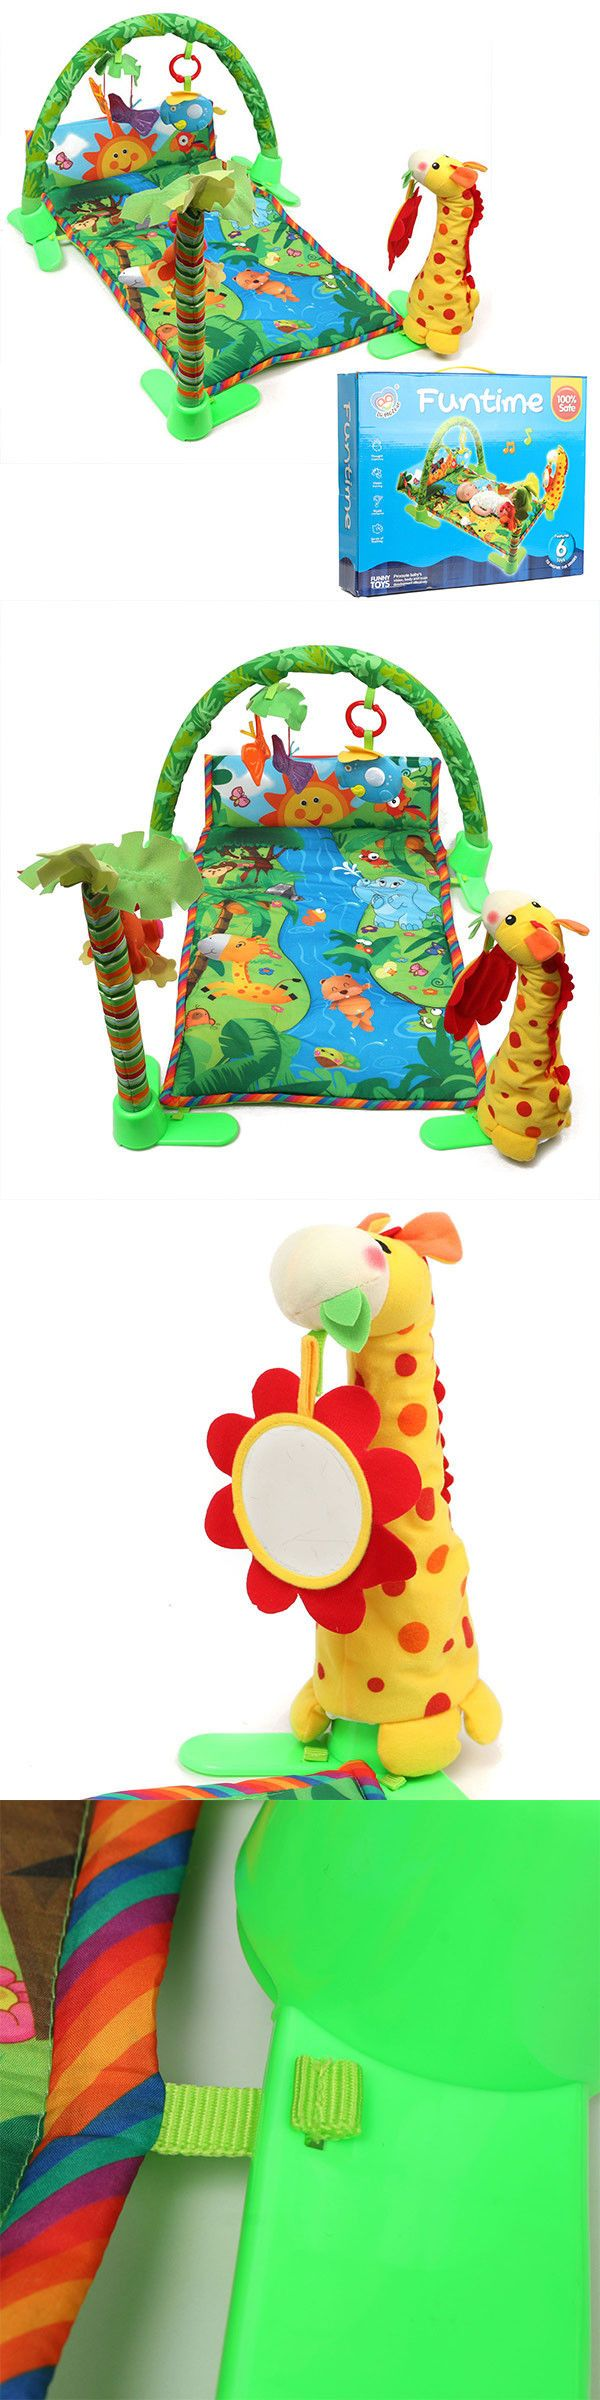 Baby Gyms and Play Mats 19069: Baby Rainforest Musical Infant Activity Gym Floor Crawl Play Mat Toys -> BUY IT NOW ONLY: $32.99 on eBay!